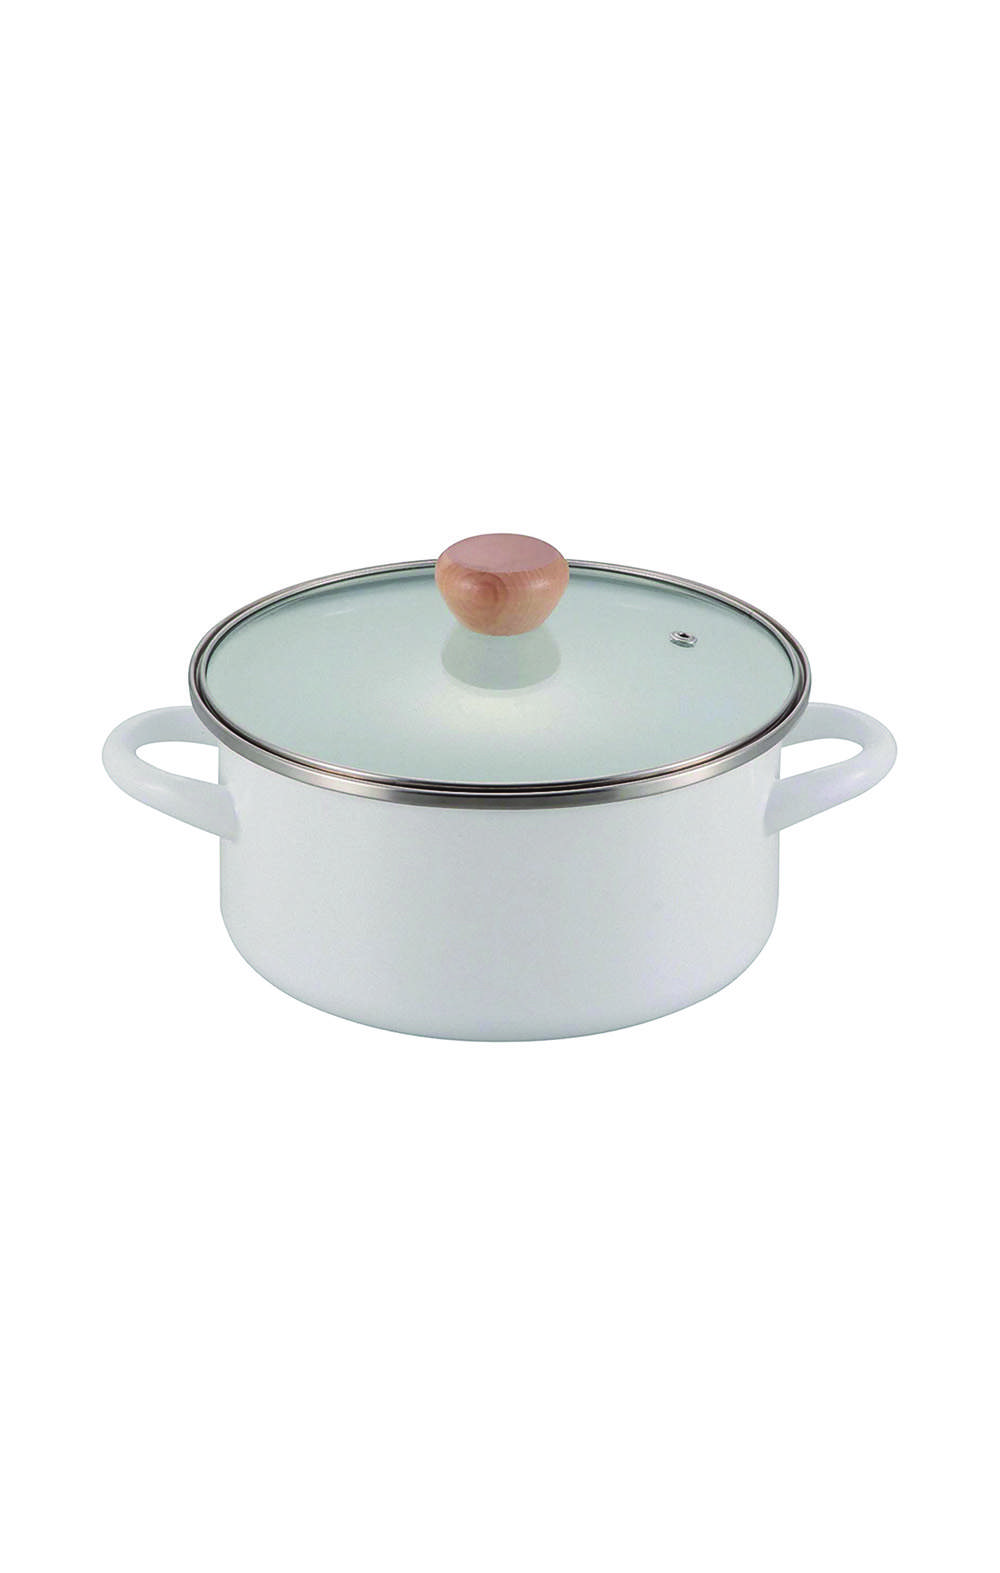 Pearl MetalHB-4944 Two-Handed Pot, White 20 cm قدر متعدد الأستخدام